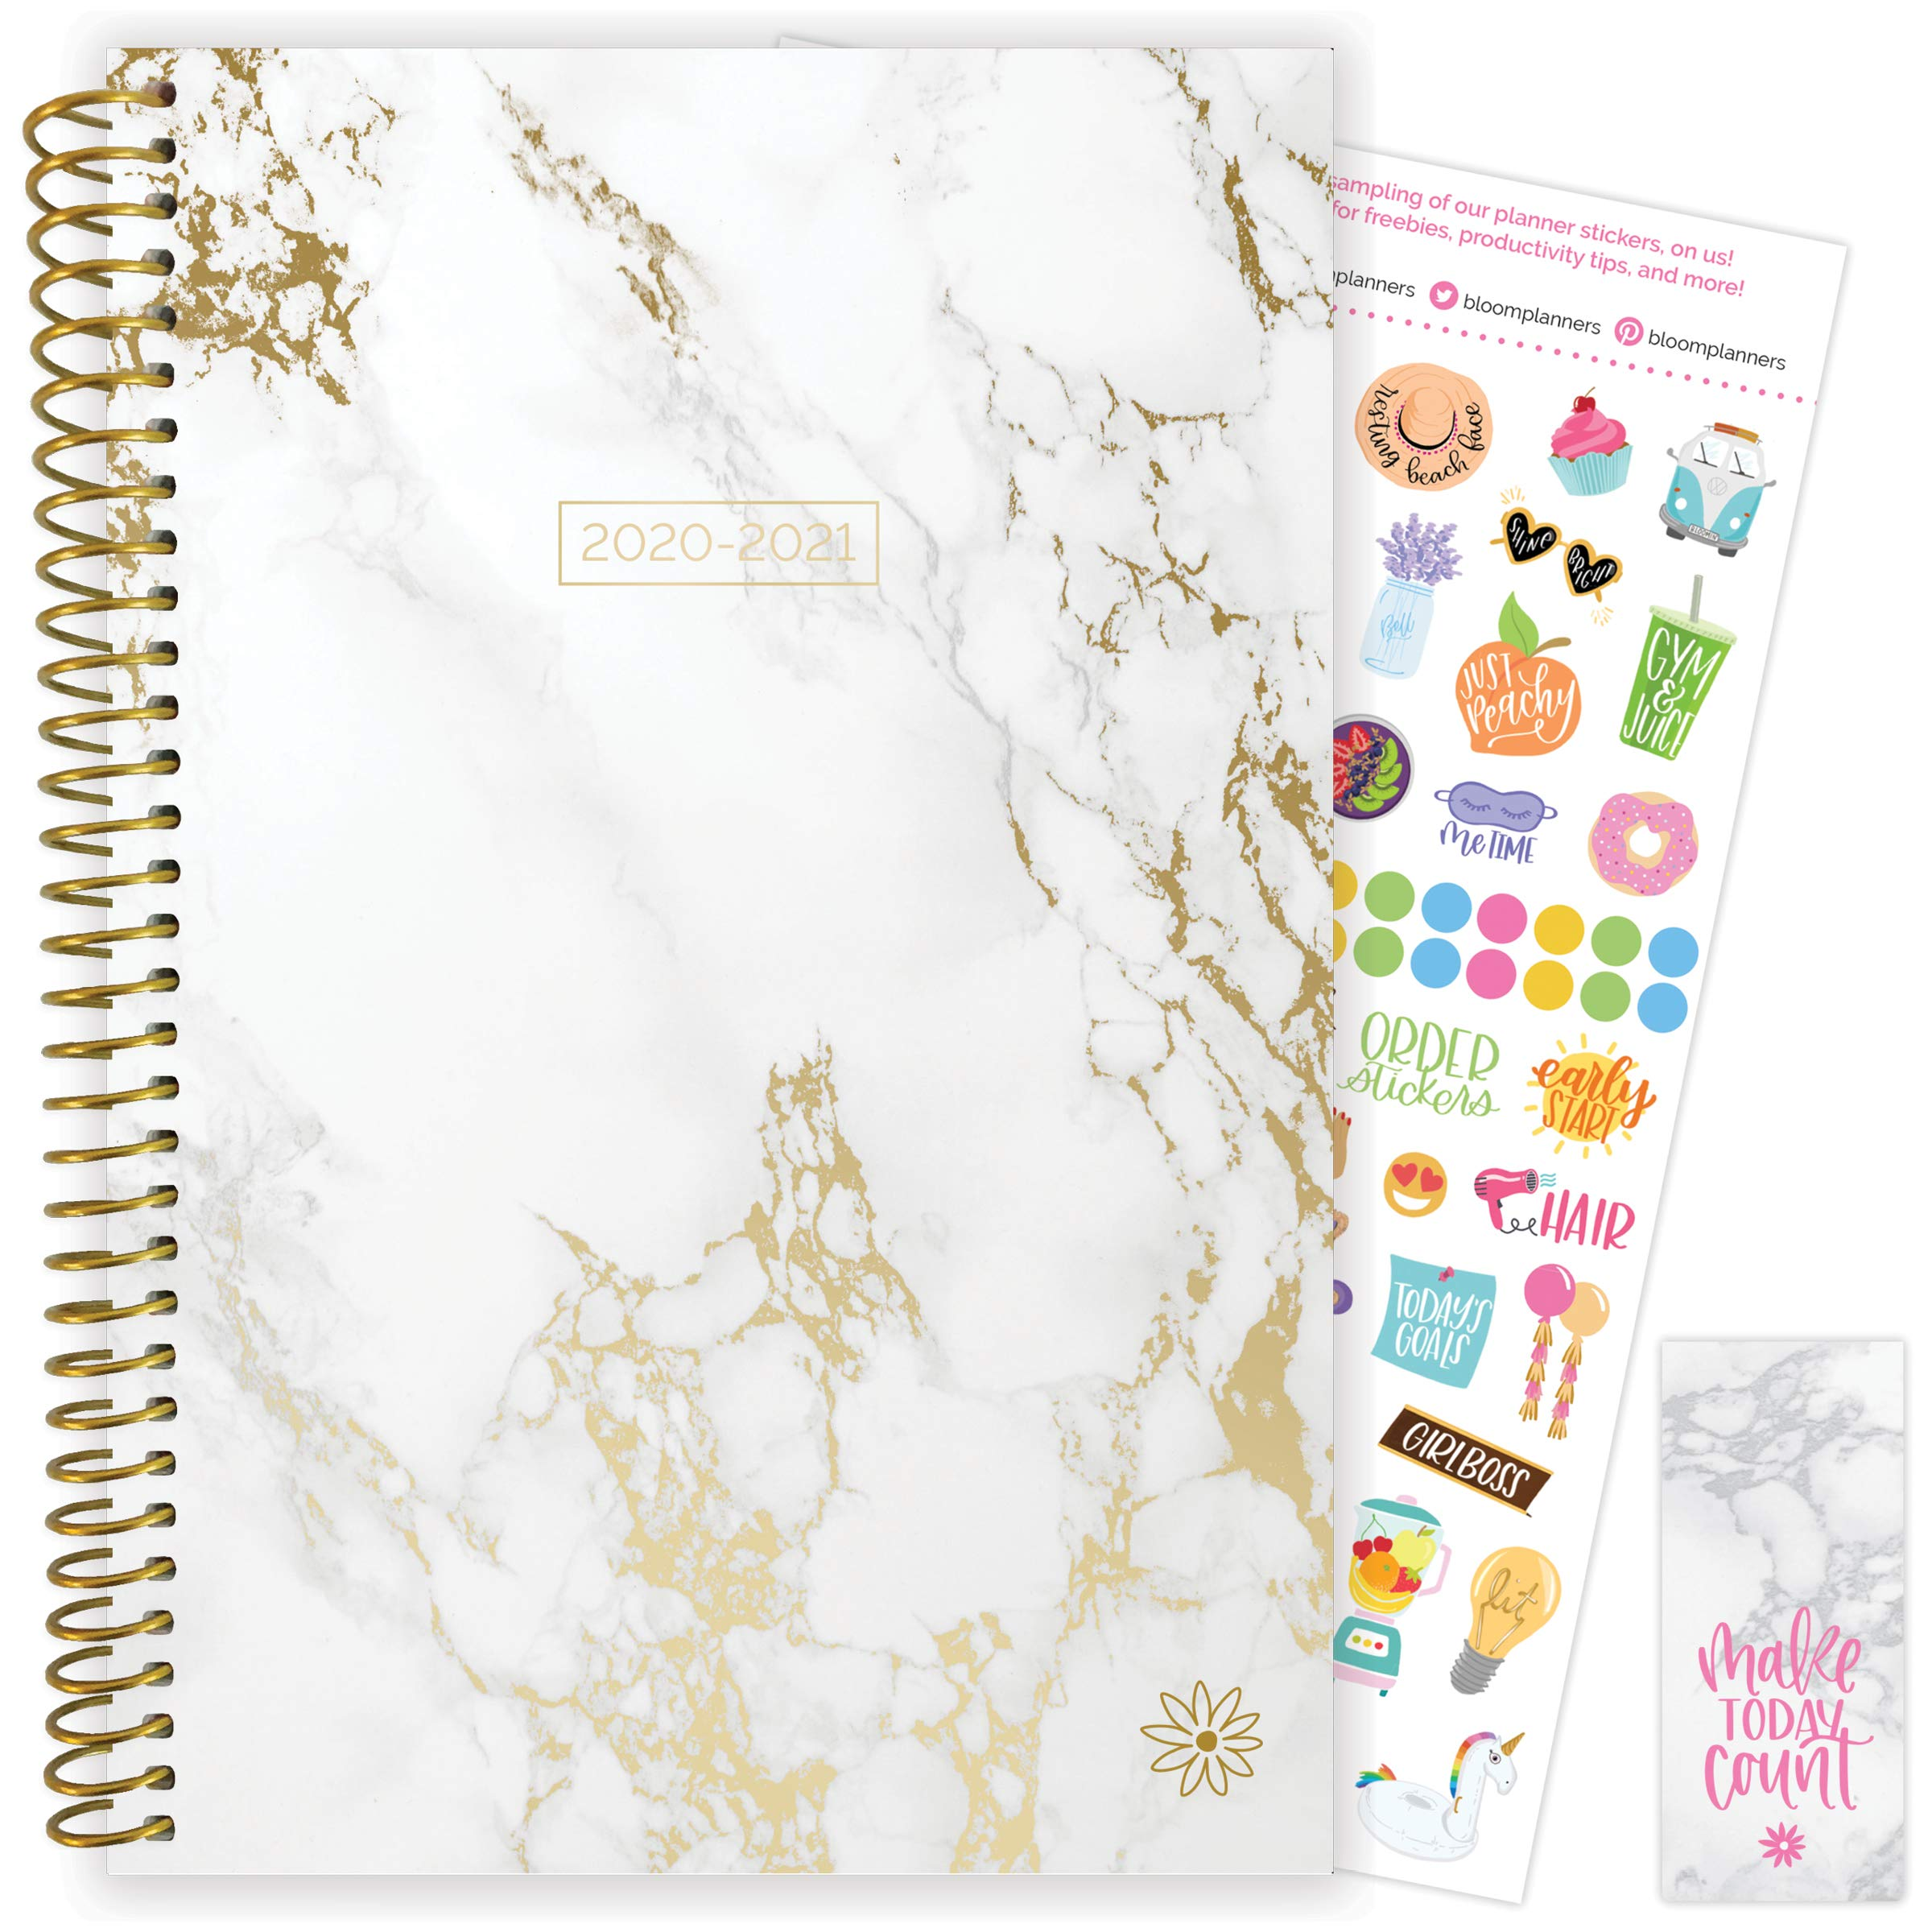 """bloom daily planners 2020-2021 Academic Year Day Planner Calendar (July 2020 - July 2021) - 6"""" x 8.25"""" - Weekly/Monthly Agenda Organizer Book with Stickers & Bookmark - Marble"""